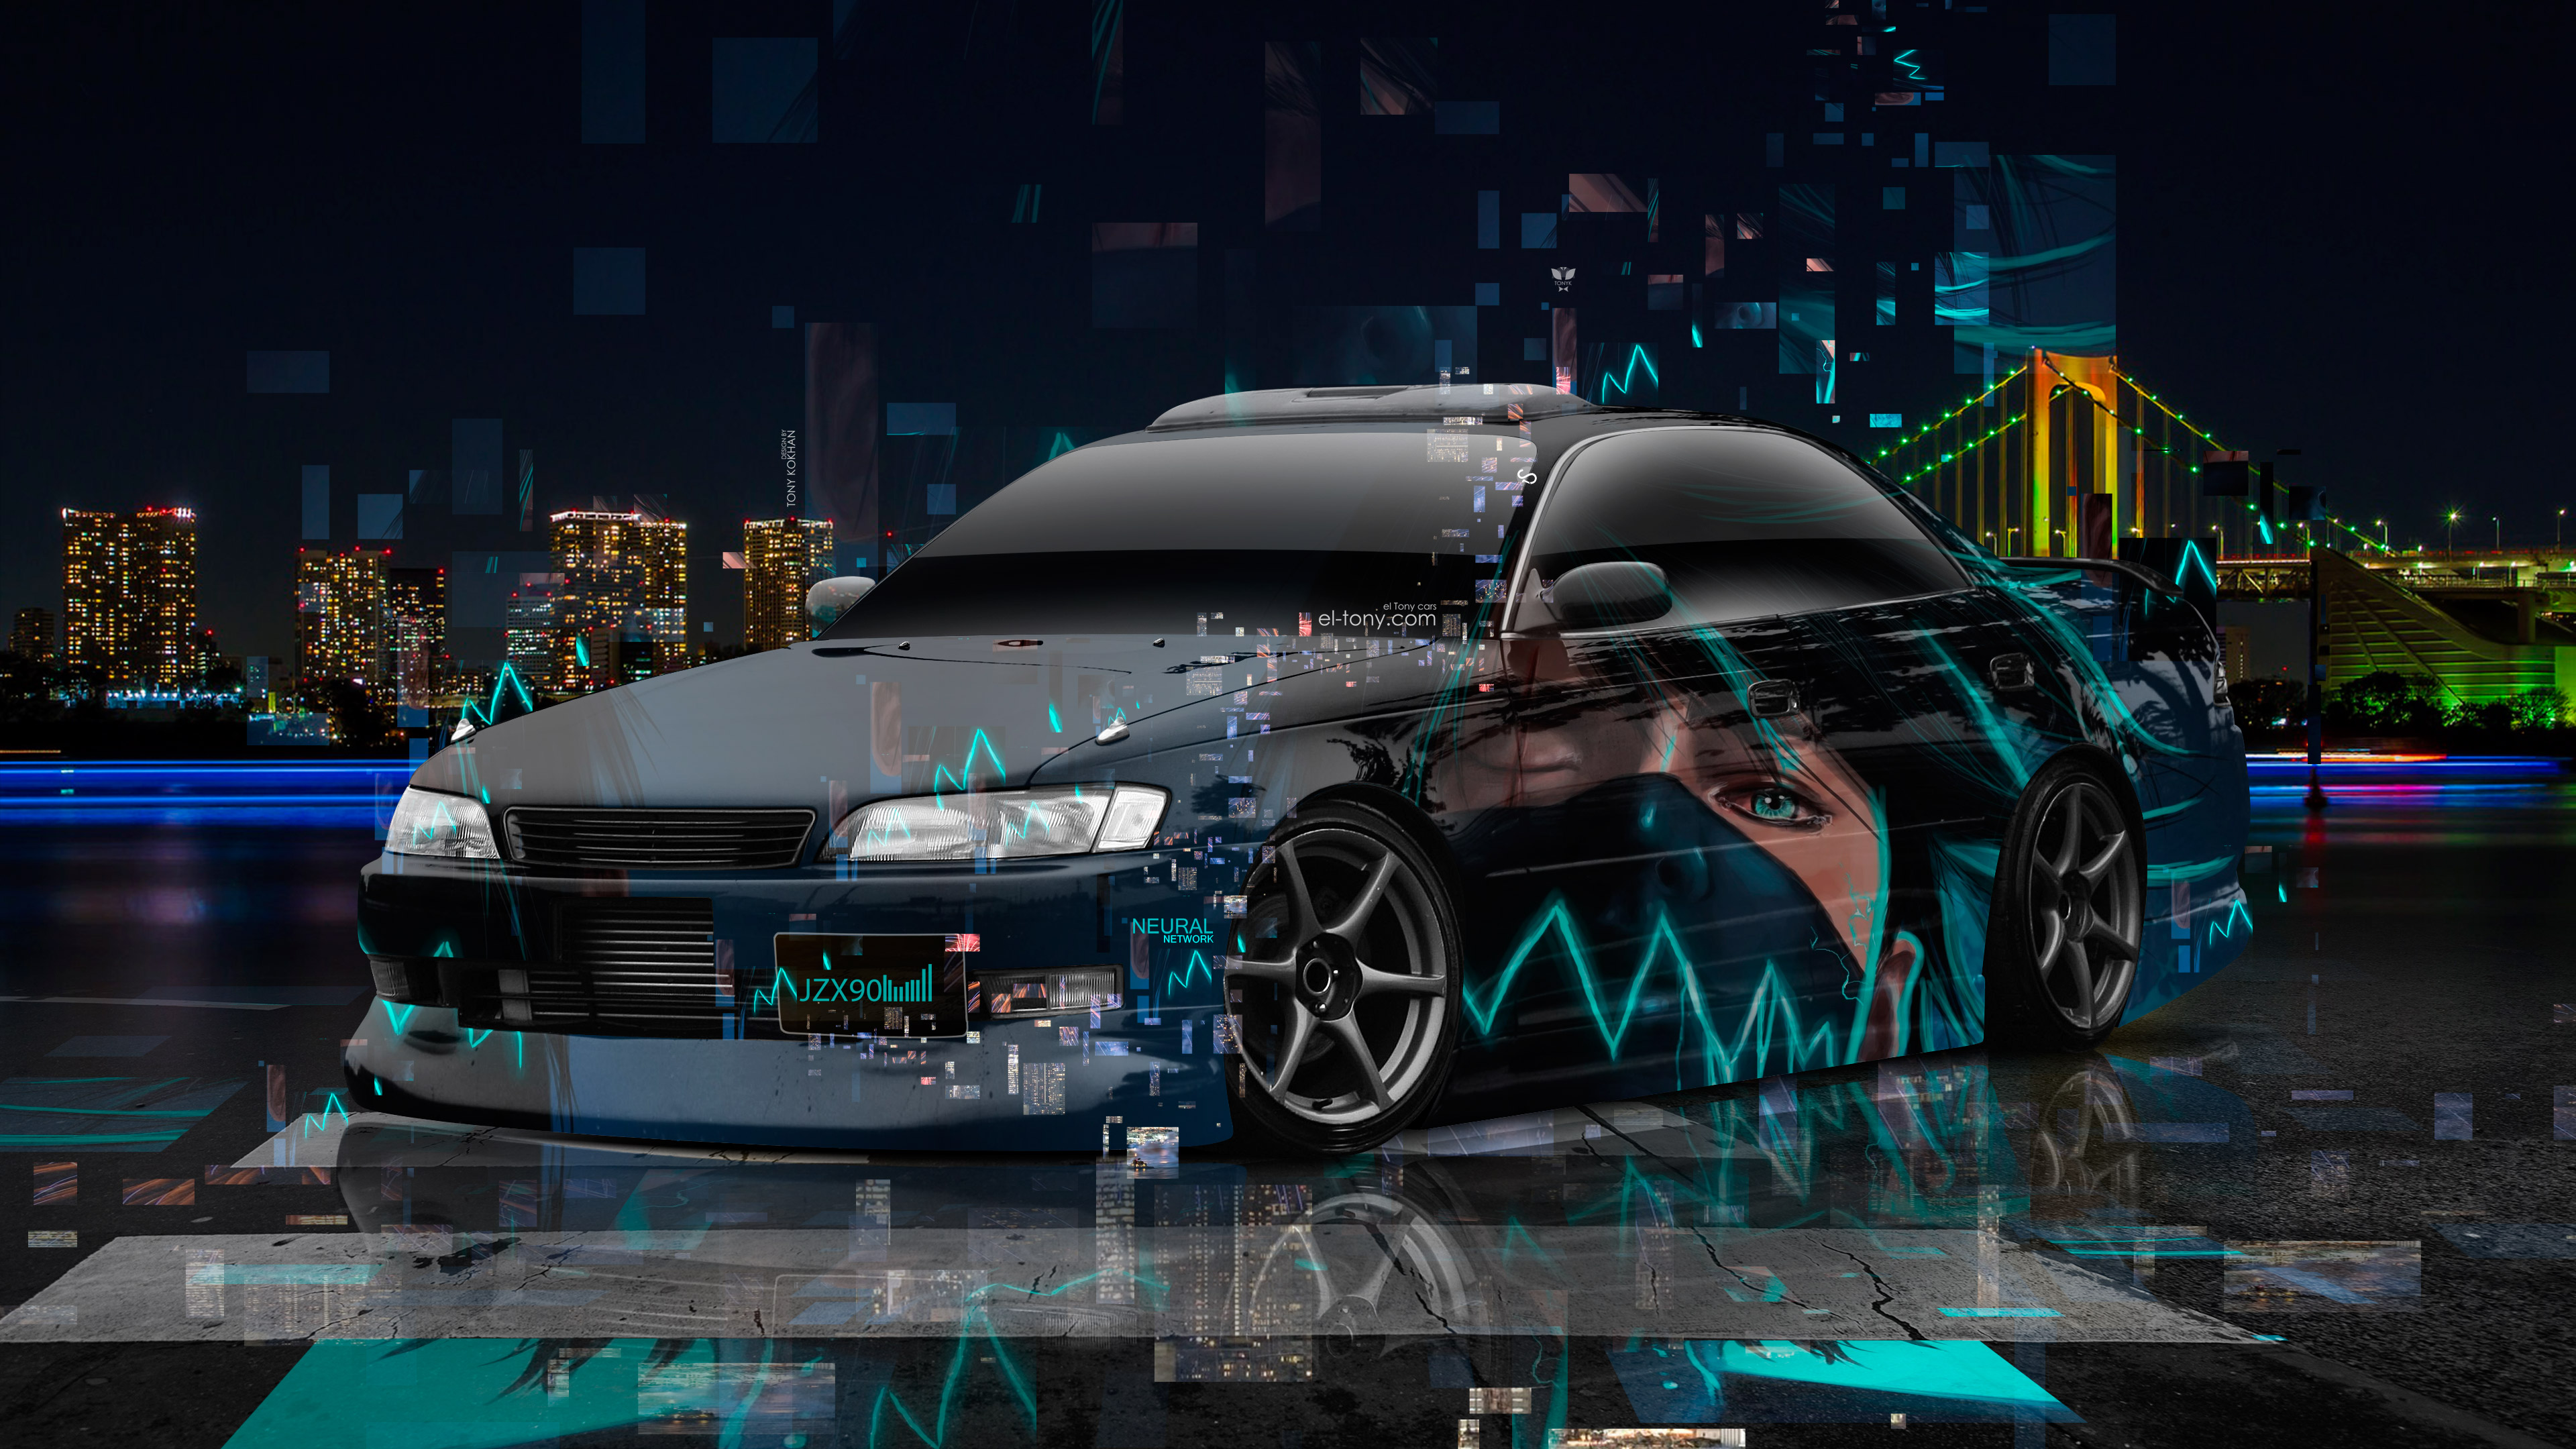 Toyota-Mark2-JZX90-JDM-Tuning-3D-Super-Neural-Network-Anime-Boy-Aerography-Night-City-Art-Car-2018-Multicolors-4K-Wallpapers-design-by-Tony-Kokhan-www.el-tony.com-image